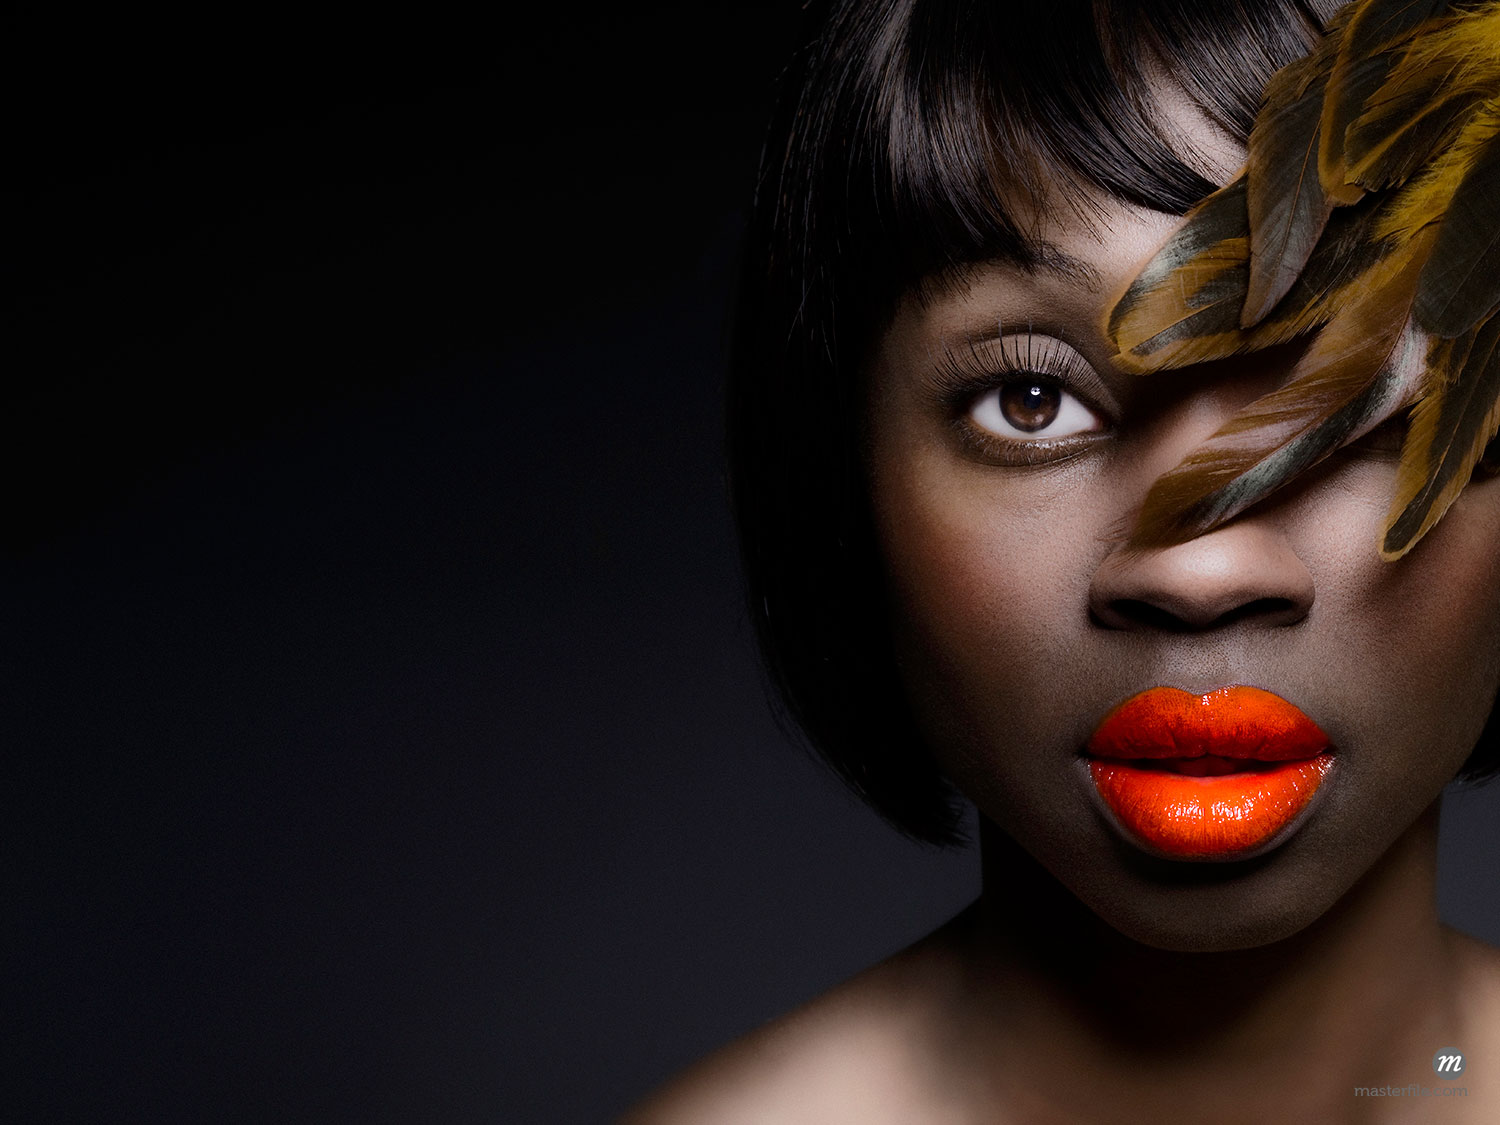 Close-up portrait of a glamorous model with feathers covering one eye and vibrant lipstick  ©  Dana Hursey / Masterfile